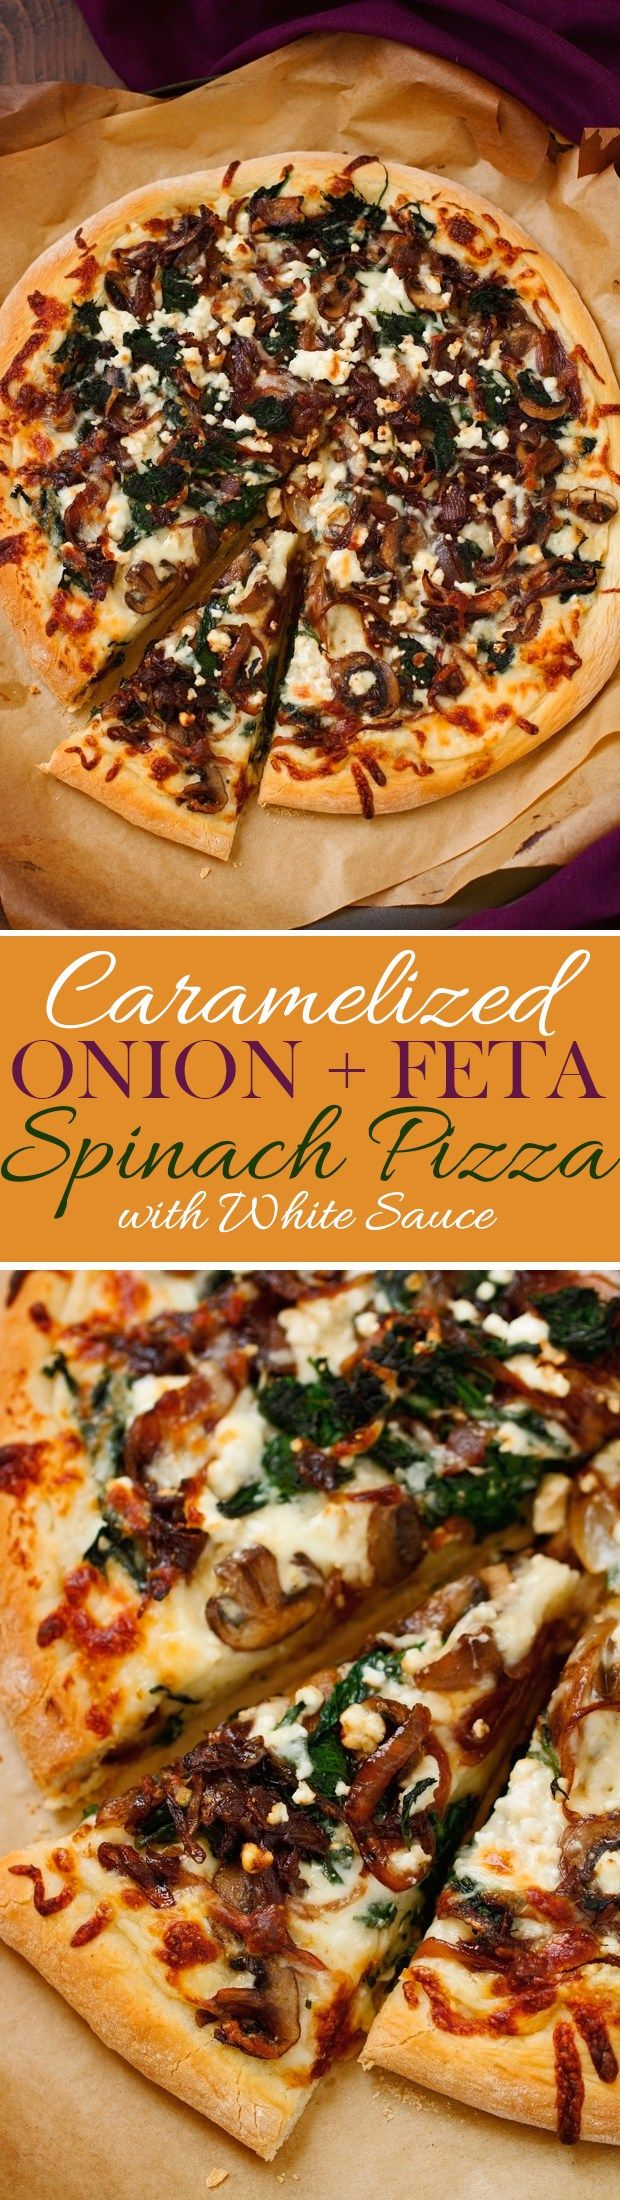 Caramelized Onion Feta Spinach Pizza with White Sauce Recipe | Little Spice Jar